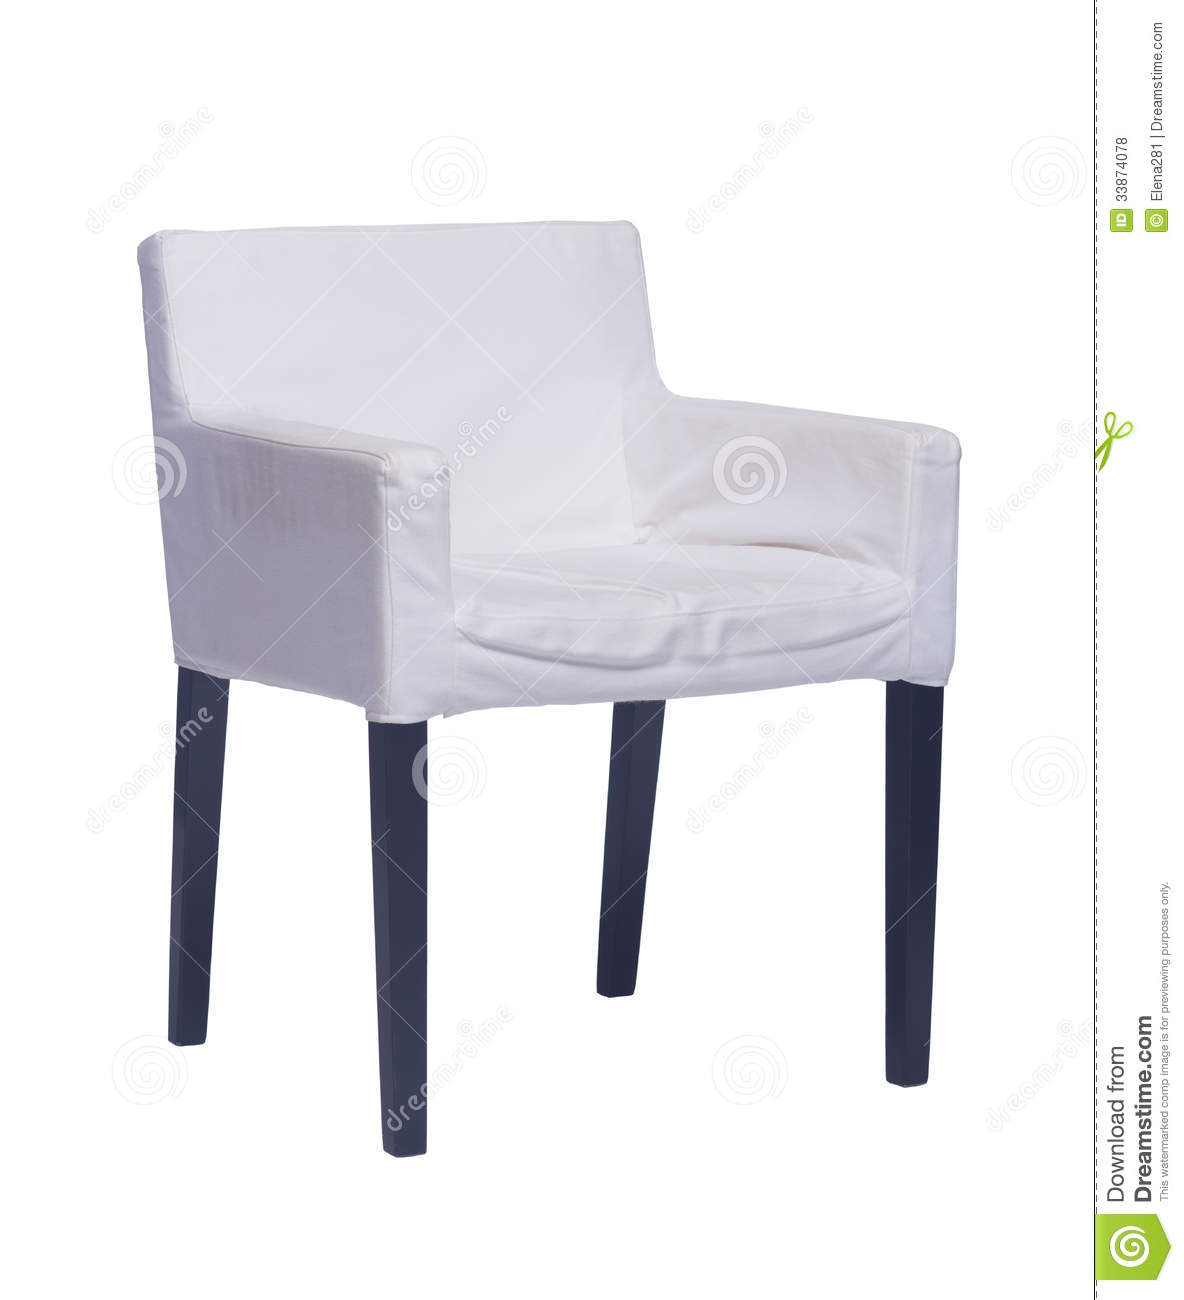 White Chair With Black Legs Isolated On White Royalty Free